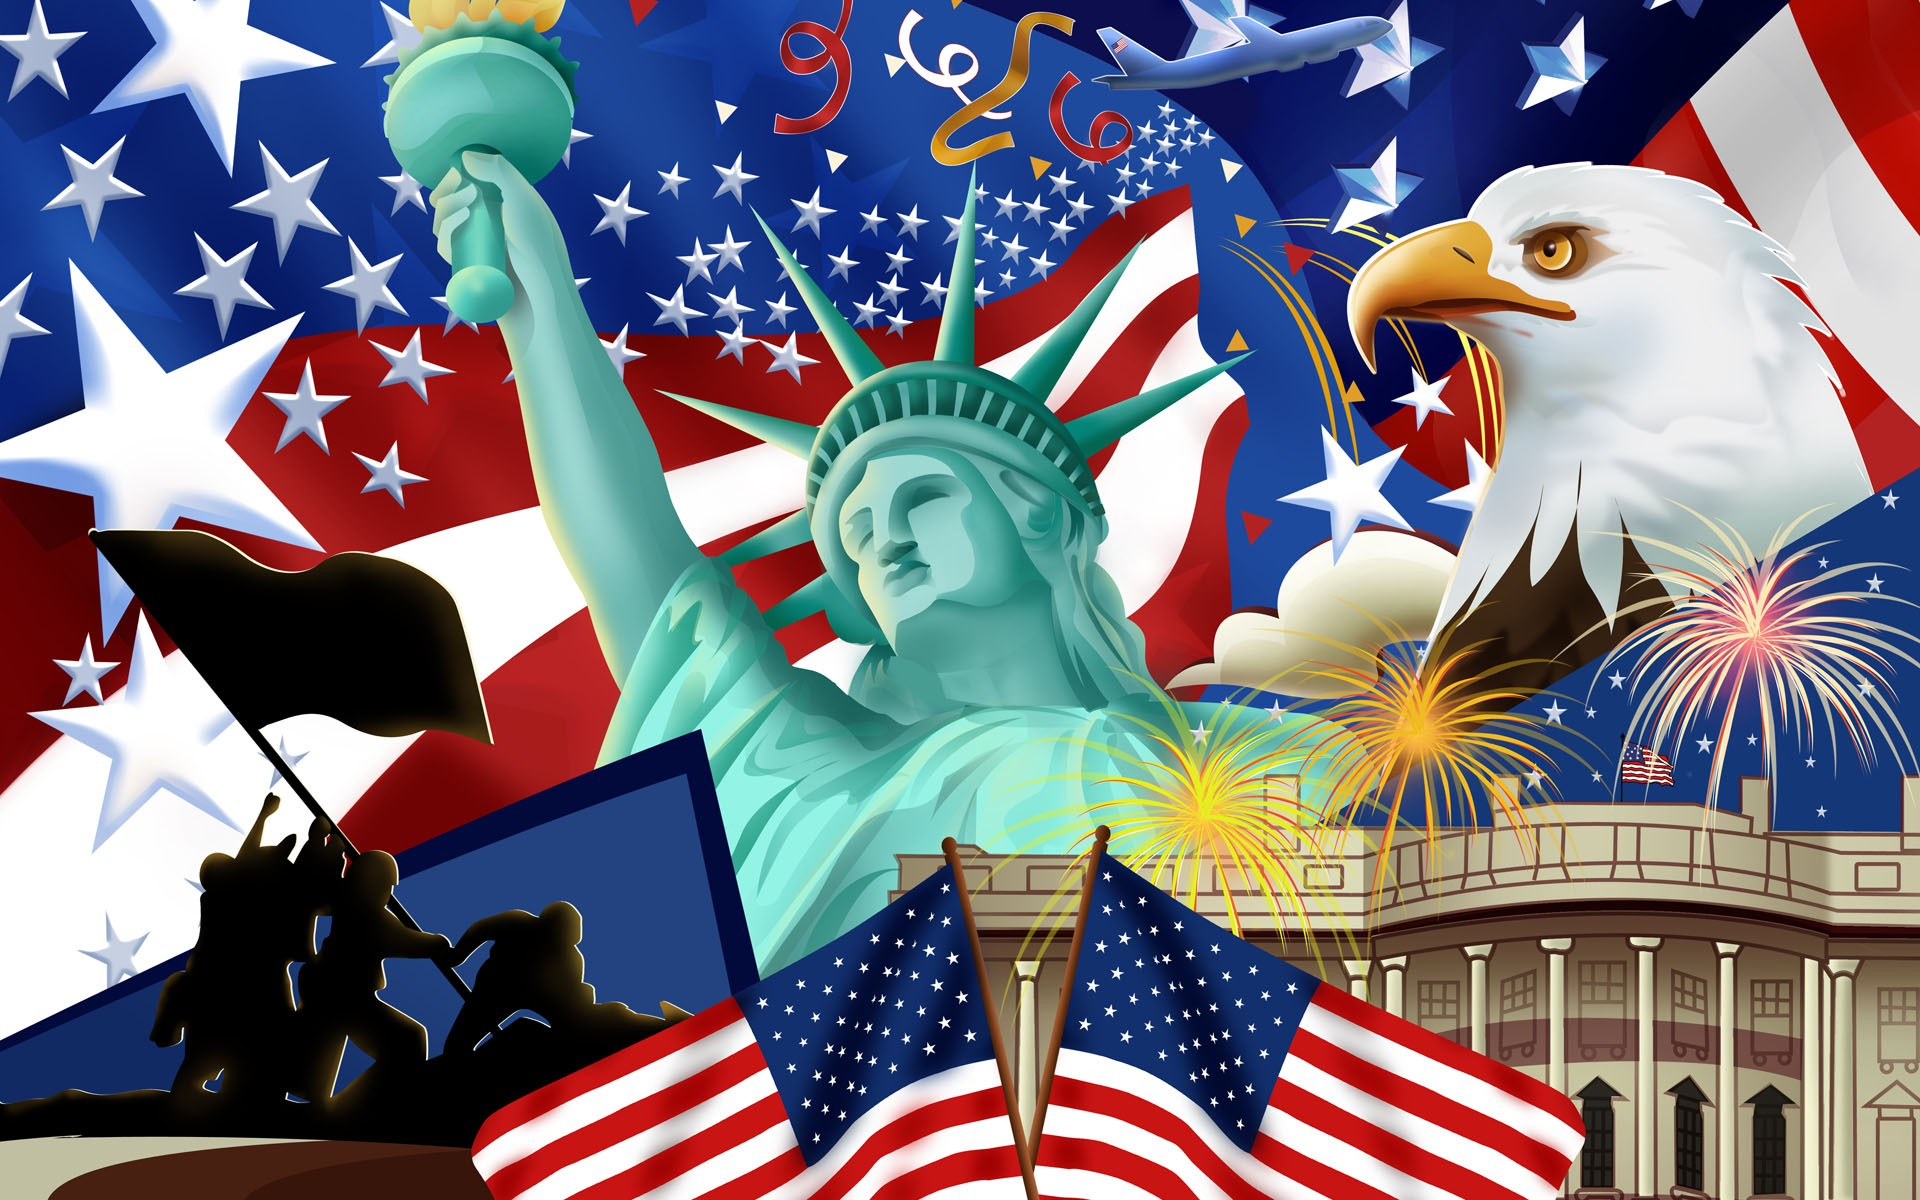 Usa Flag Wallpaper Download Free High Resolution Wallpapers